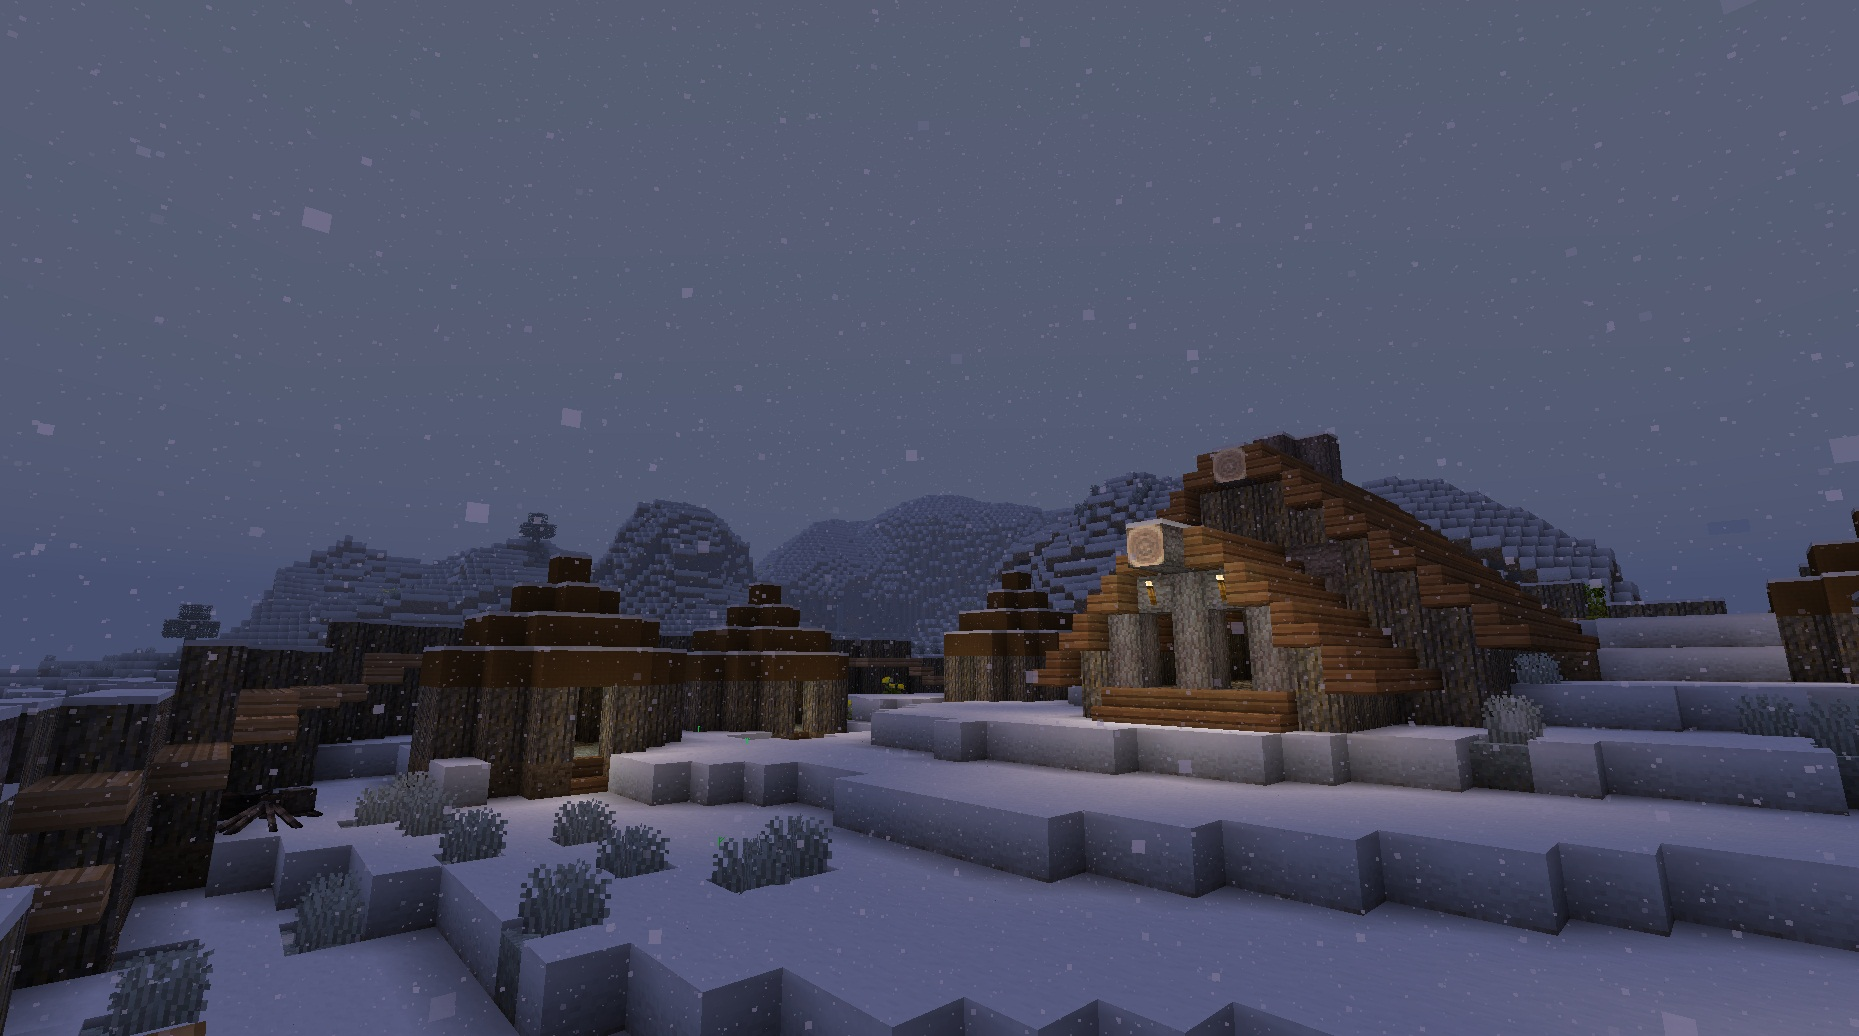 How to install Pixel Reality Texture Pack for Minecraft